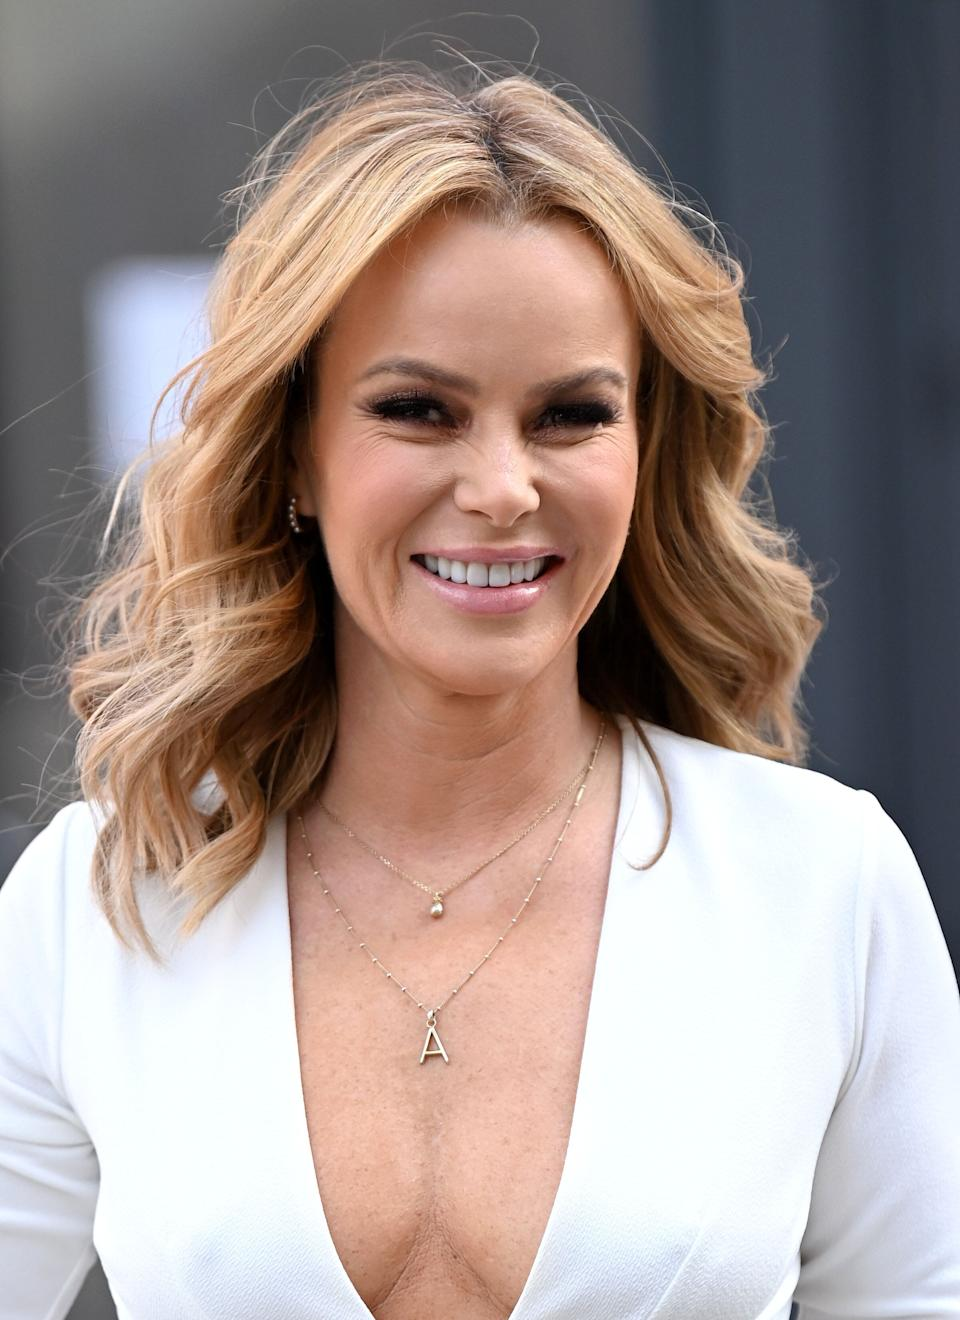 Amanda Holden  (Photo: Karwai Tang via Getty Images)